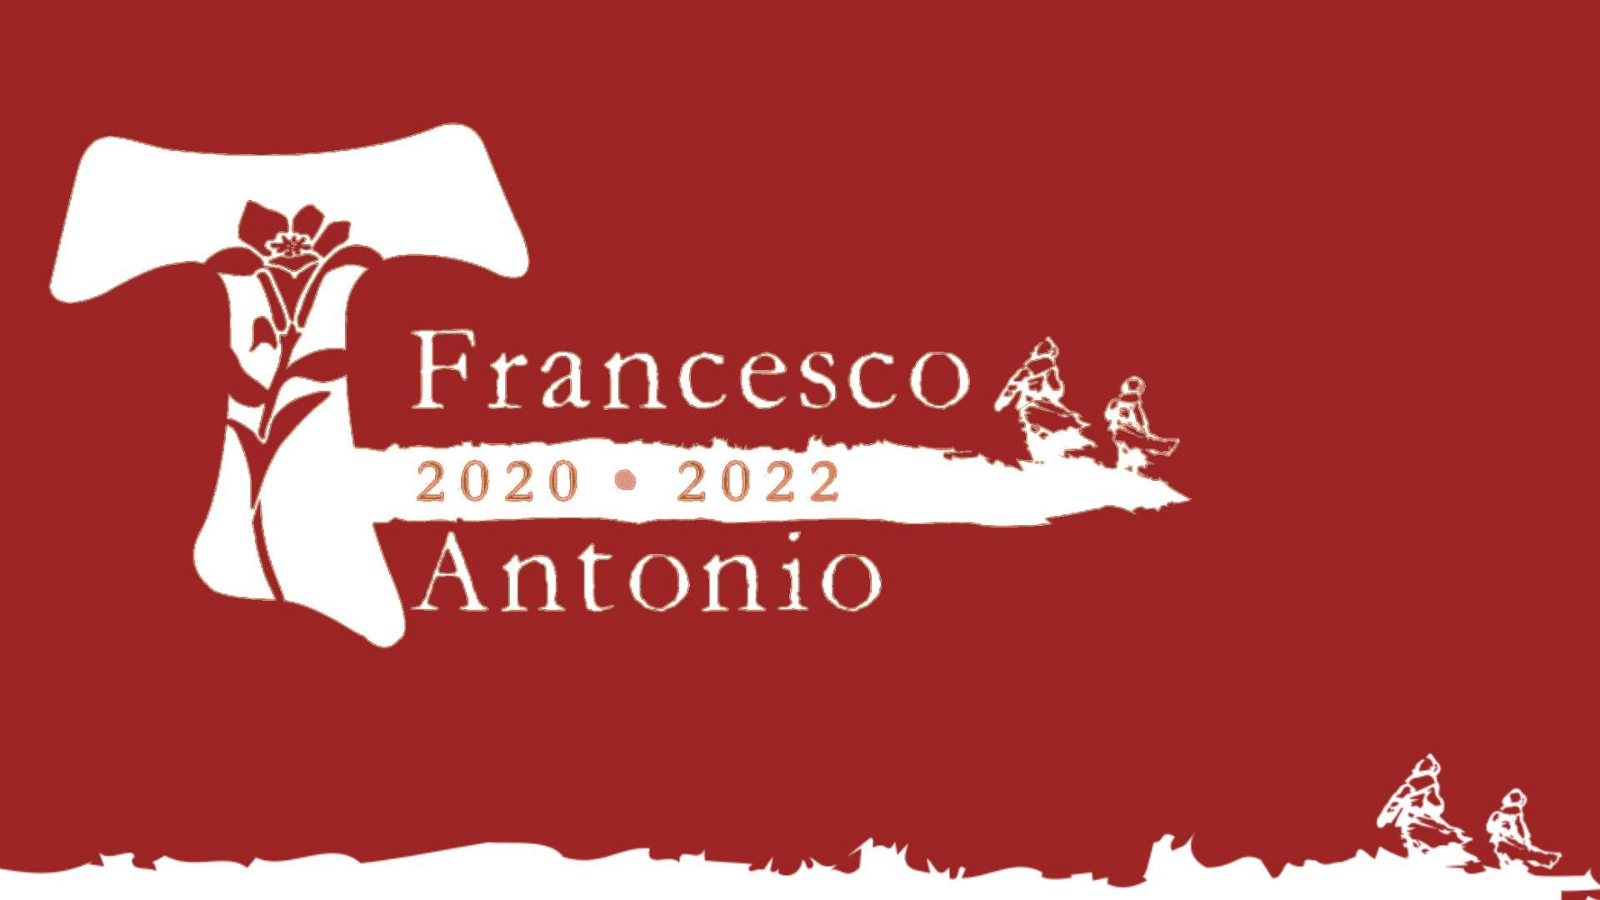 Francesco-Antonio 20-22